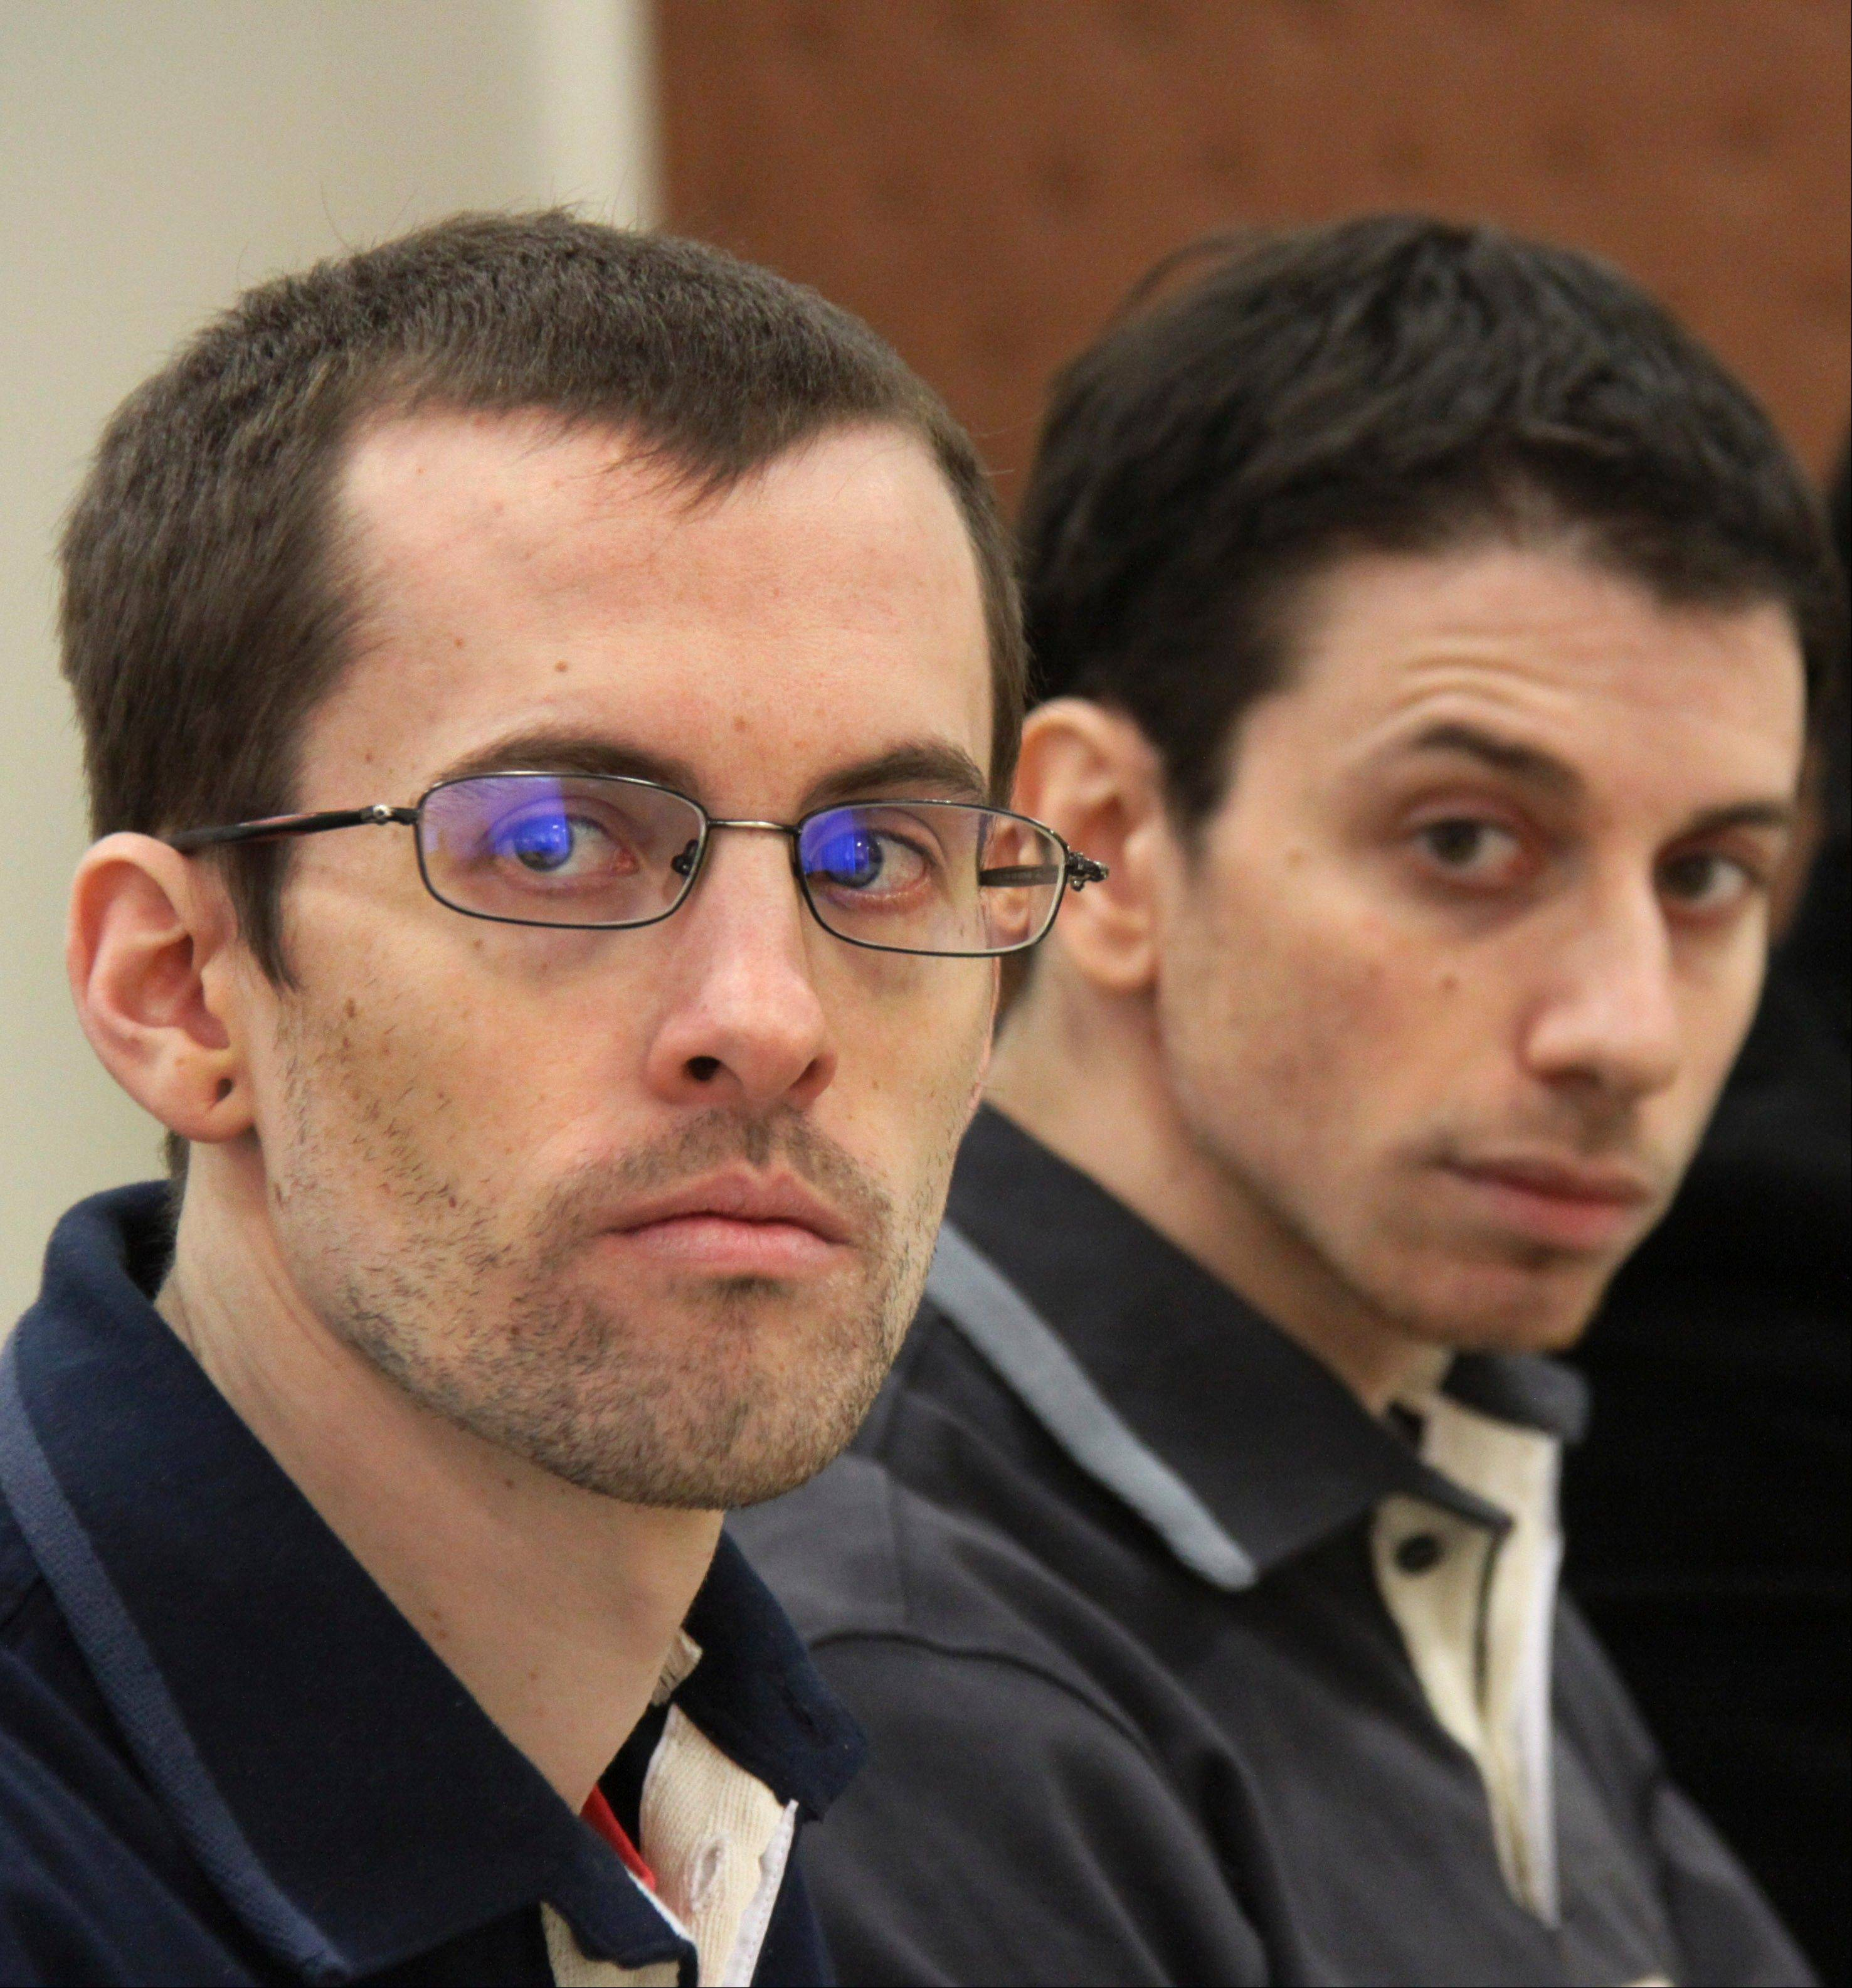 U.S. hikers Shane Bauer, left, and Josh Fattal, seen above at a hearing last February, were released from Iranian custody Wednesday.